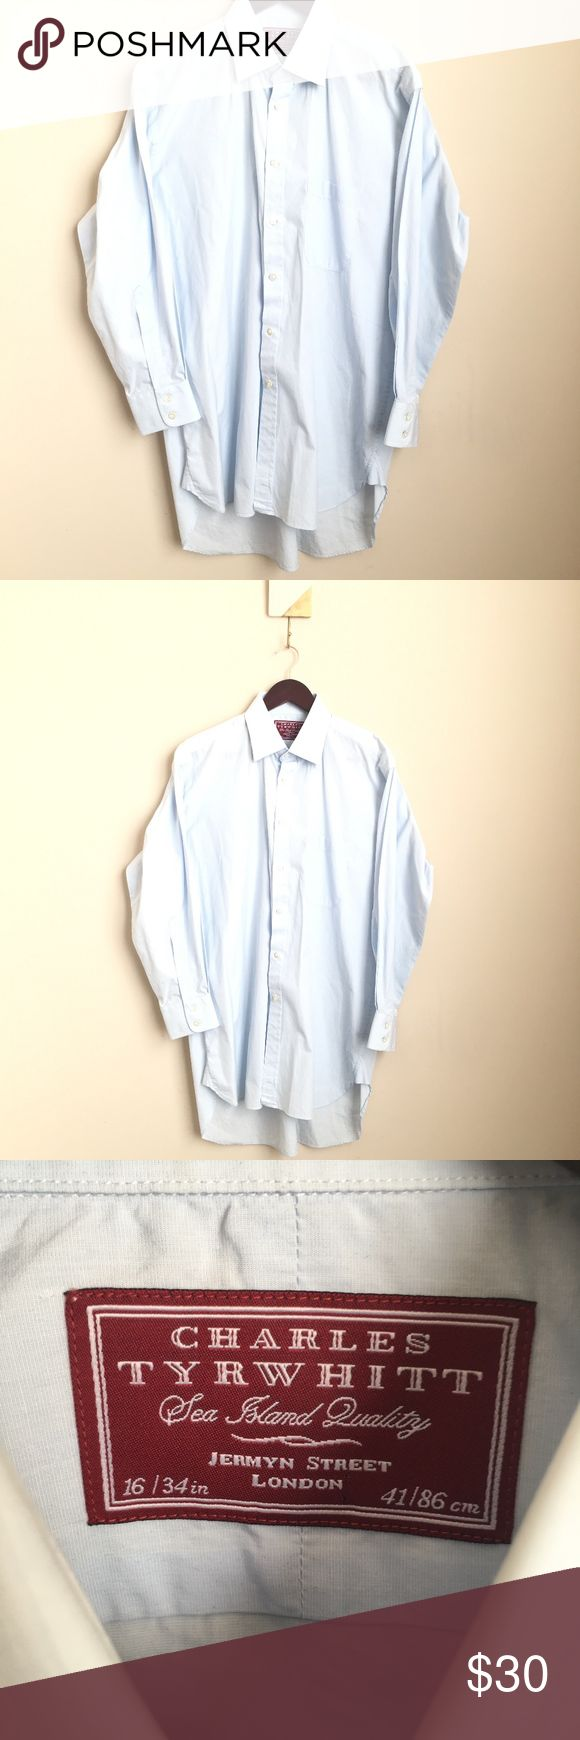 "Charles Tyrwhitt Sea Island Jermyn Dress Shirt Charles Tyrwhitt Sea Island Quality Jermyn Street London solid light blue mens dress shirt  Size 16/34in   Great condition  Pocket on the chest  Measurements taken while laying flat: 25"" Armpit to armpit 32"" Length 24"" Waist Charles Tyrwhitt Shirts Dress Shirts"